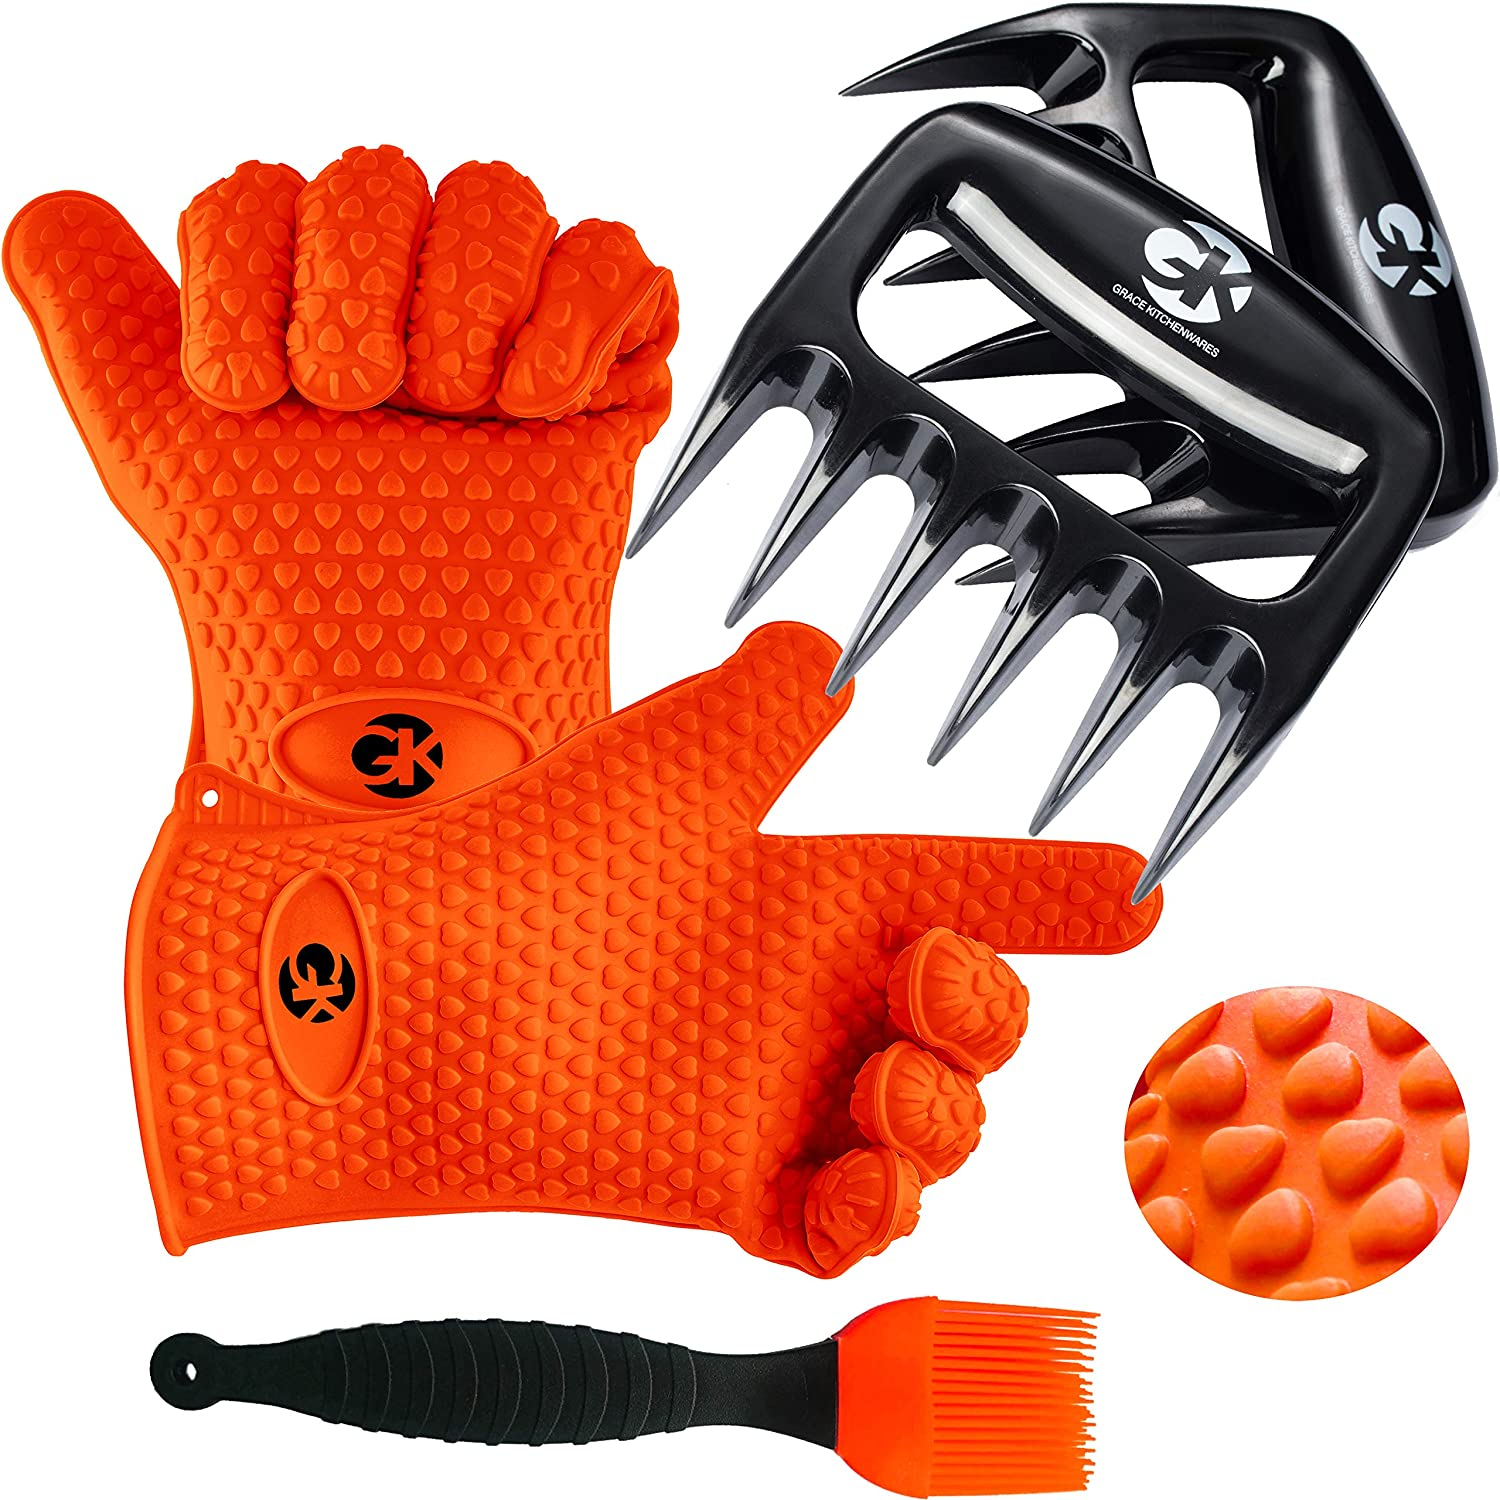 GK's 3 + 3 BBQ Man's Dream Set: Silicone BBQ Grill Gloves Plus Meat Shredder Claws Plus Silicone Basting Brush Plus 3 eBooks w/ 344 Recipes for Roasting, Grilling and Baking 91z32xgmxrL